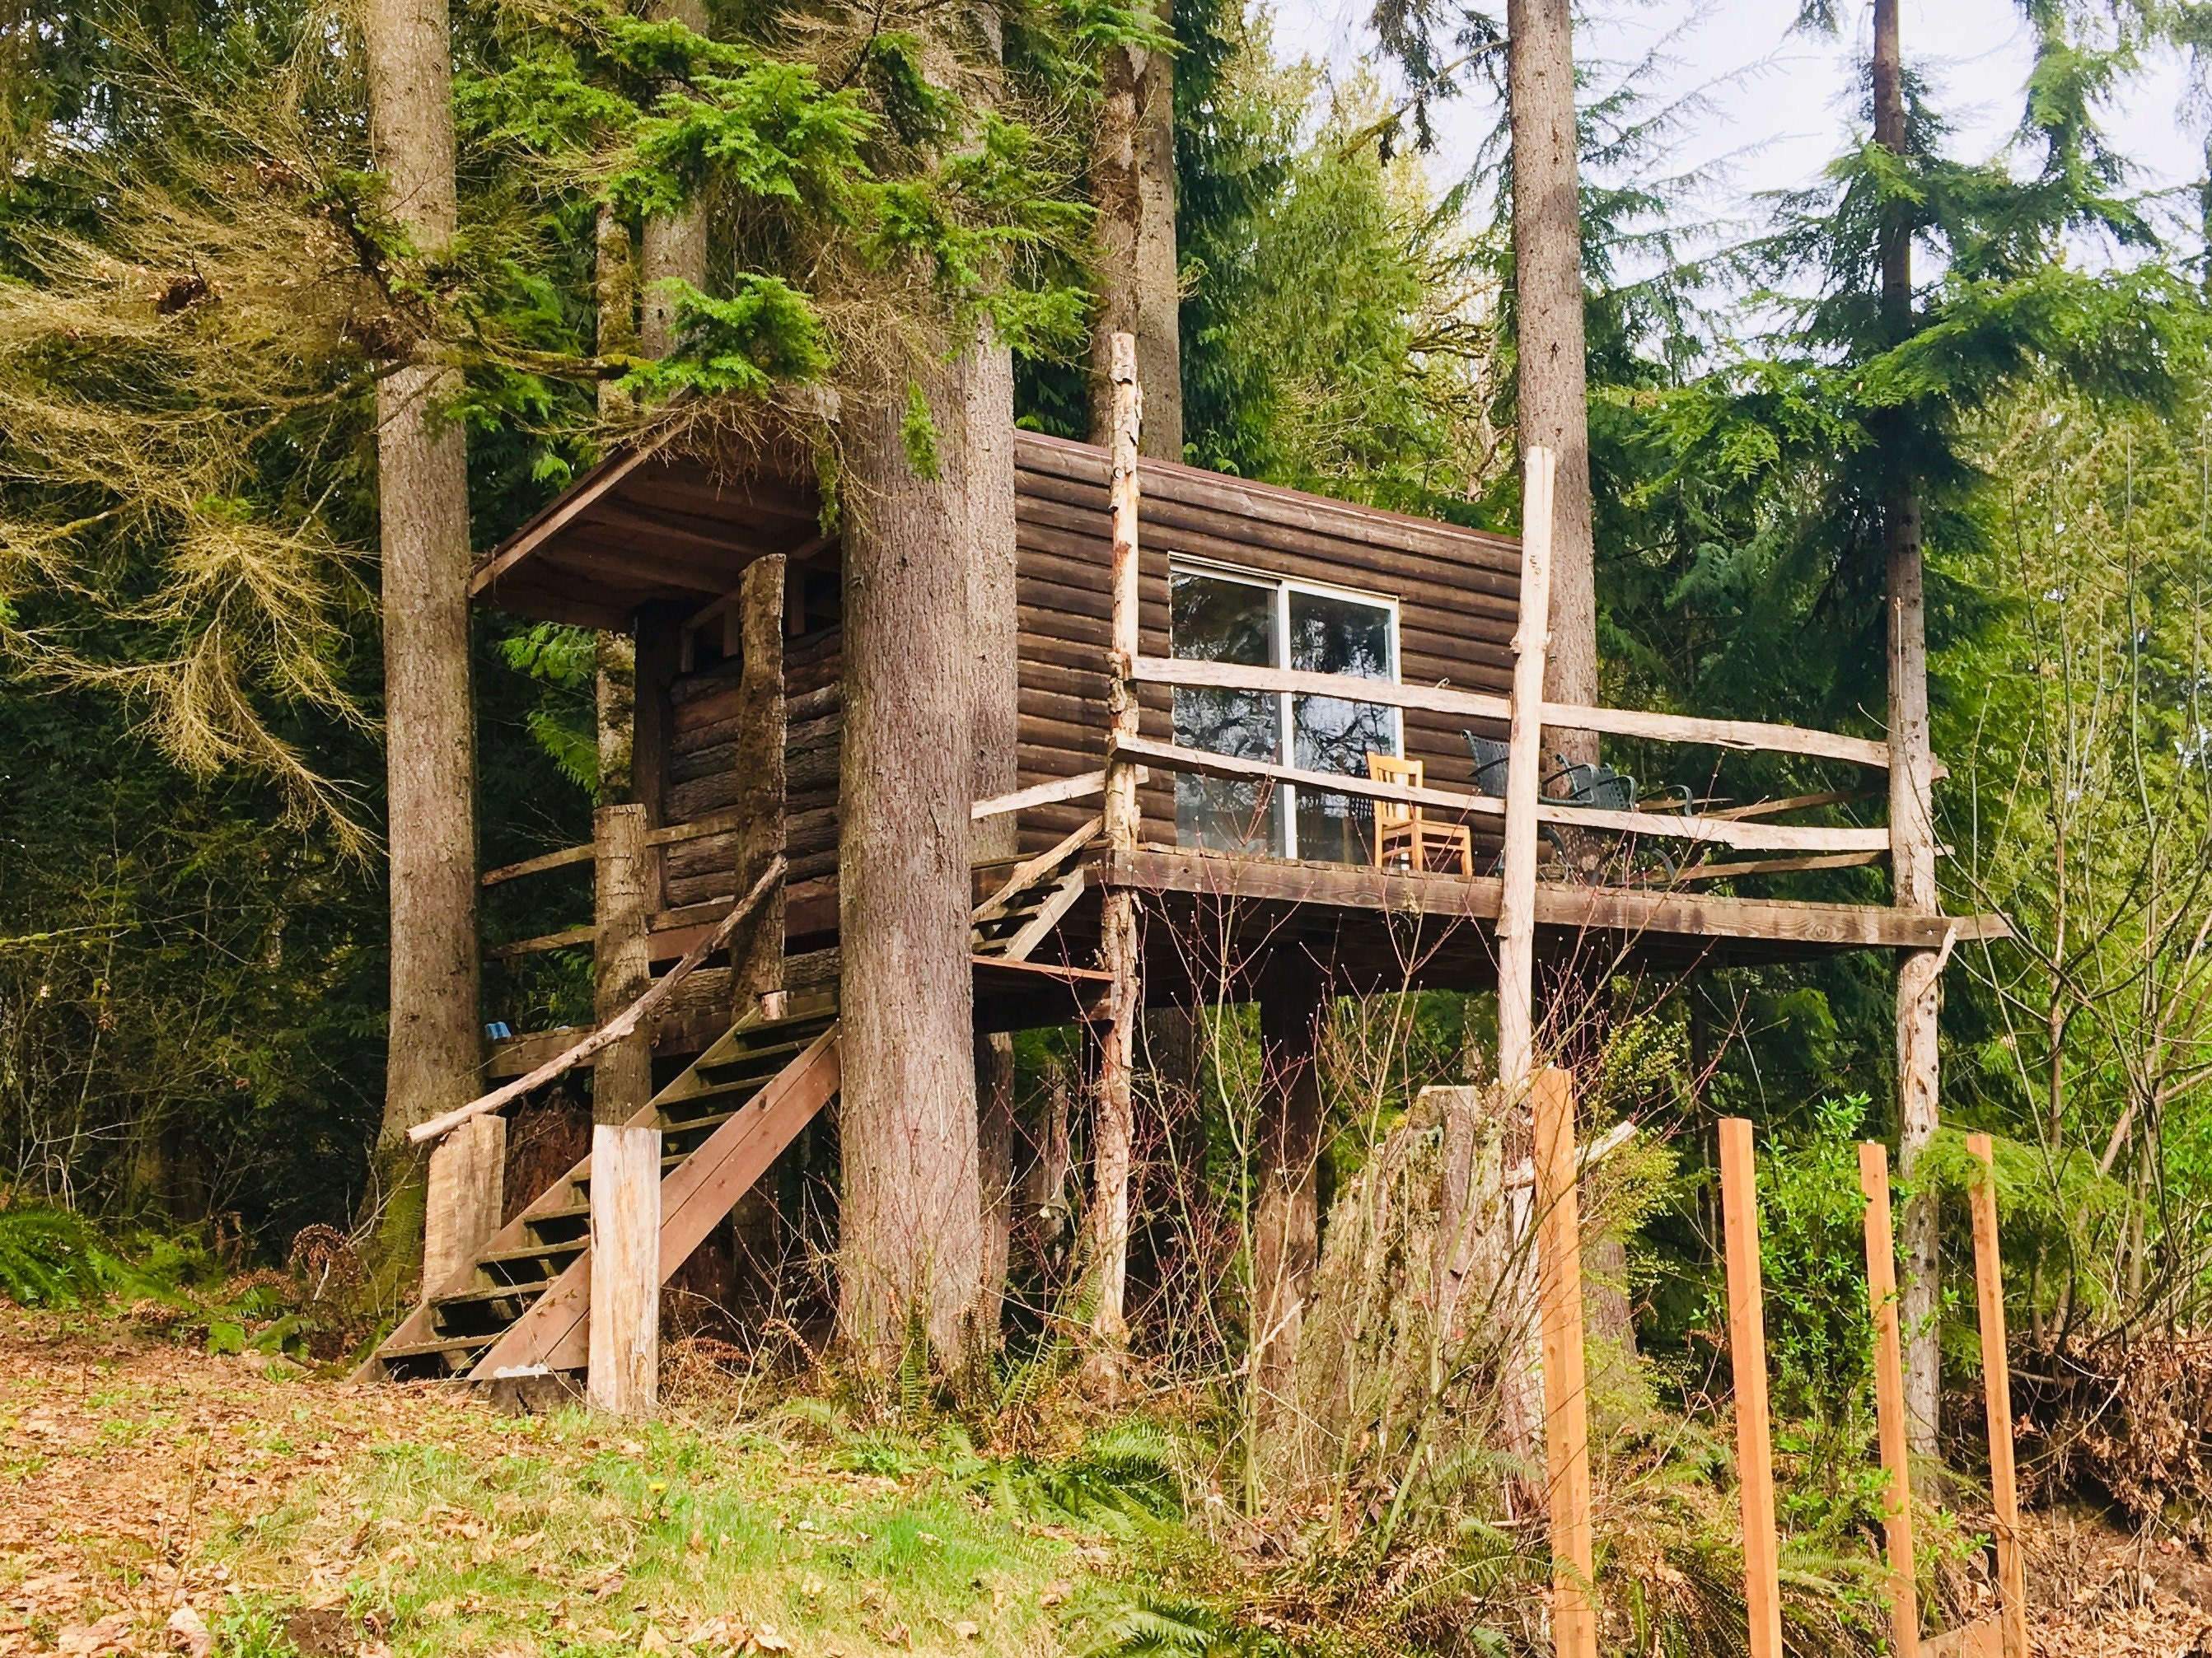 Treehouse renovation - the before